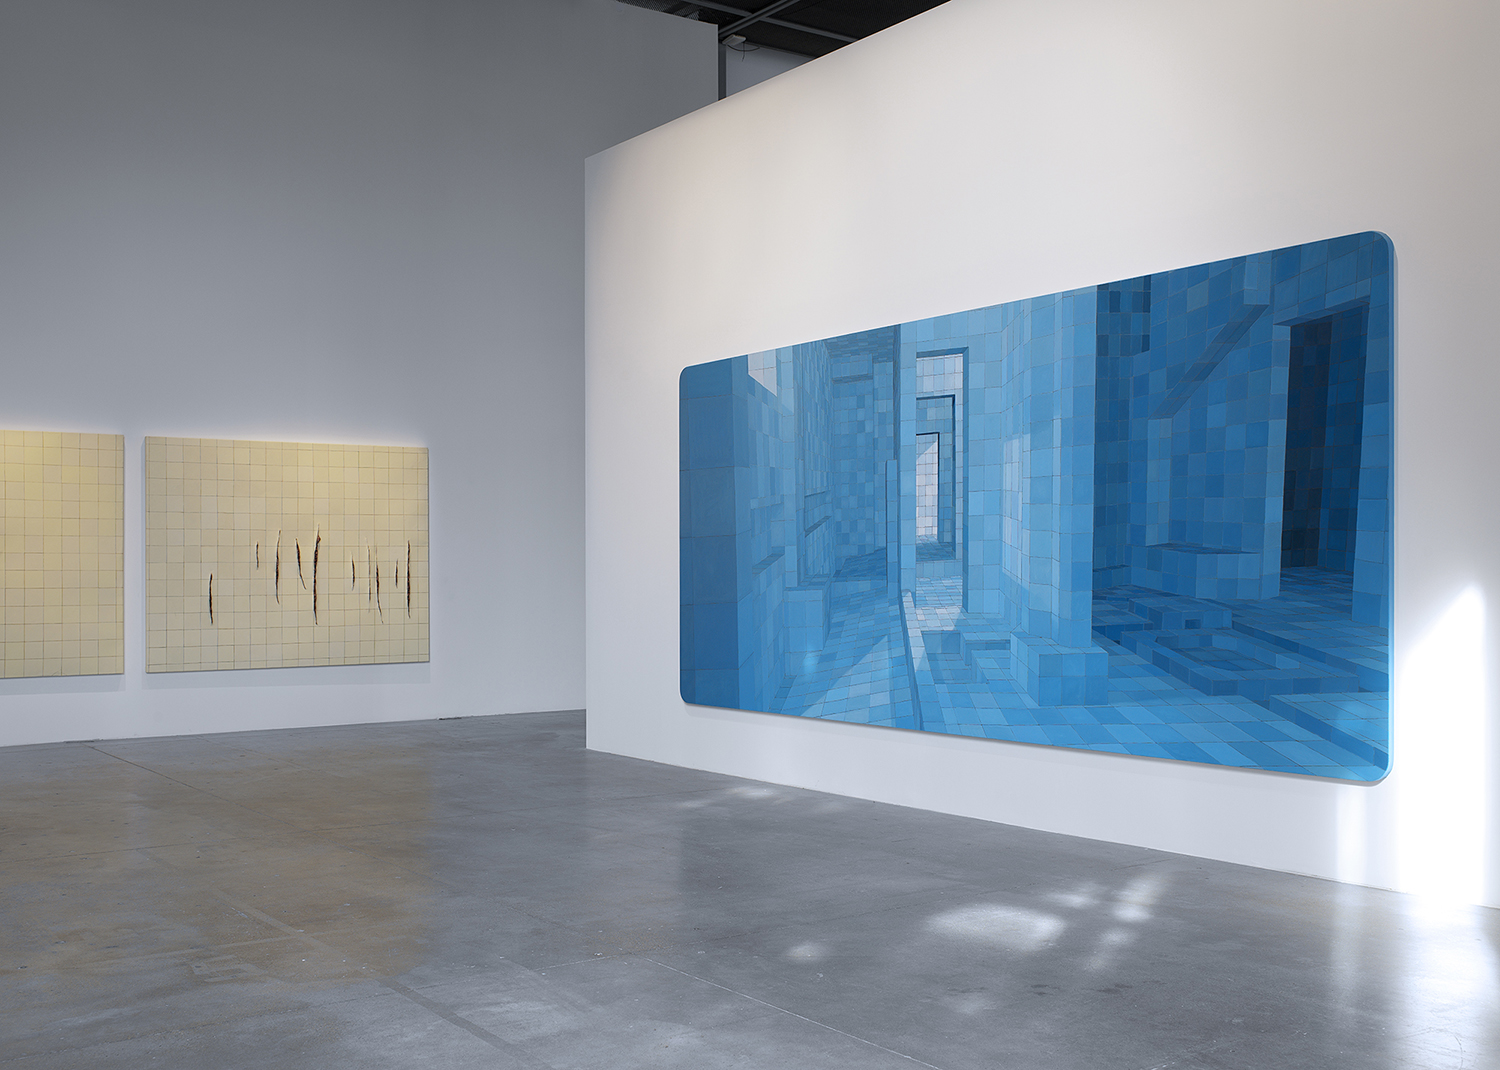 Patrick Gries Exhibitions commissions